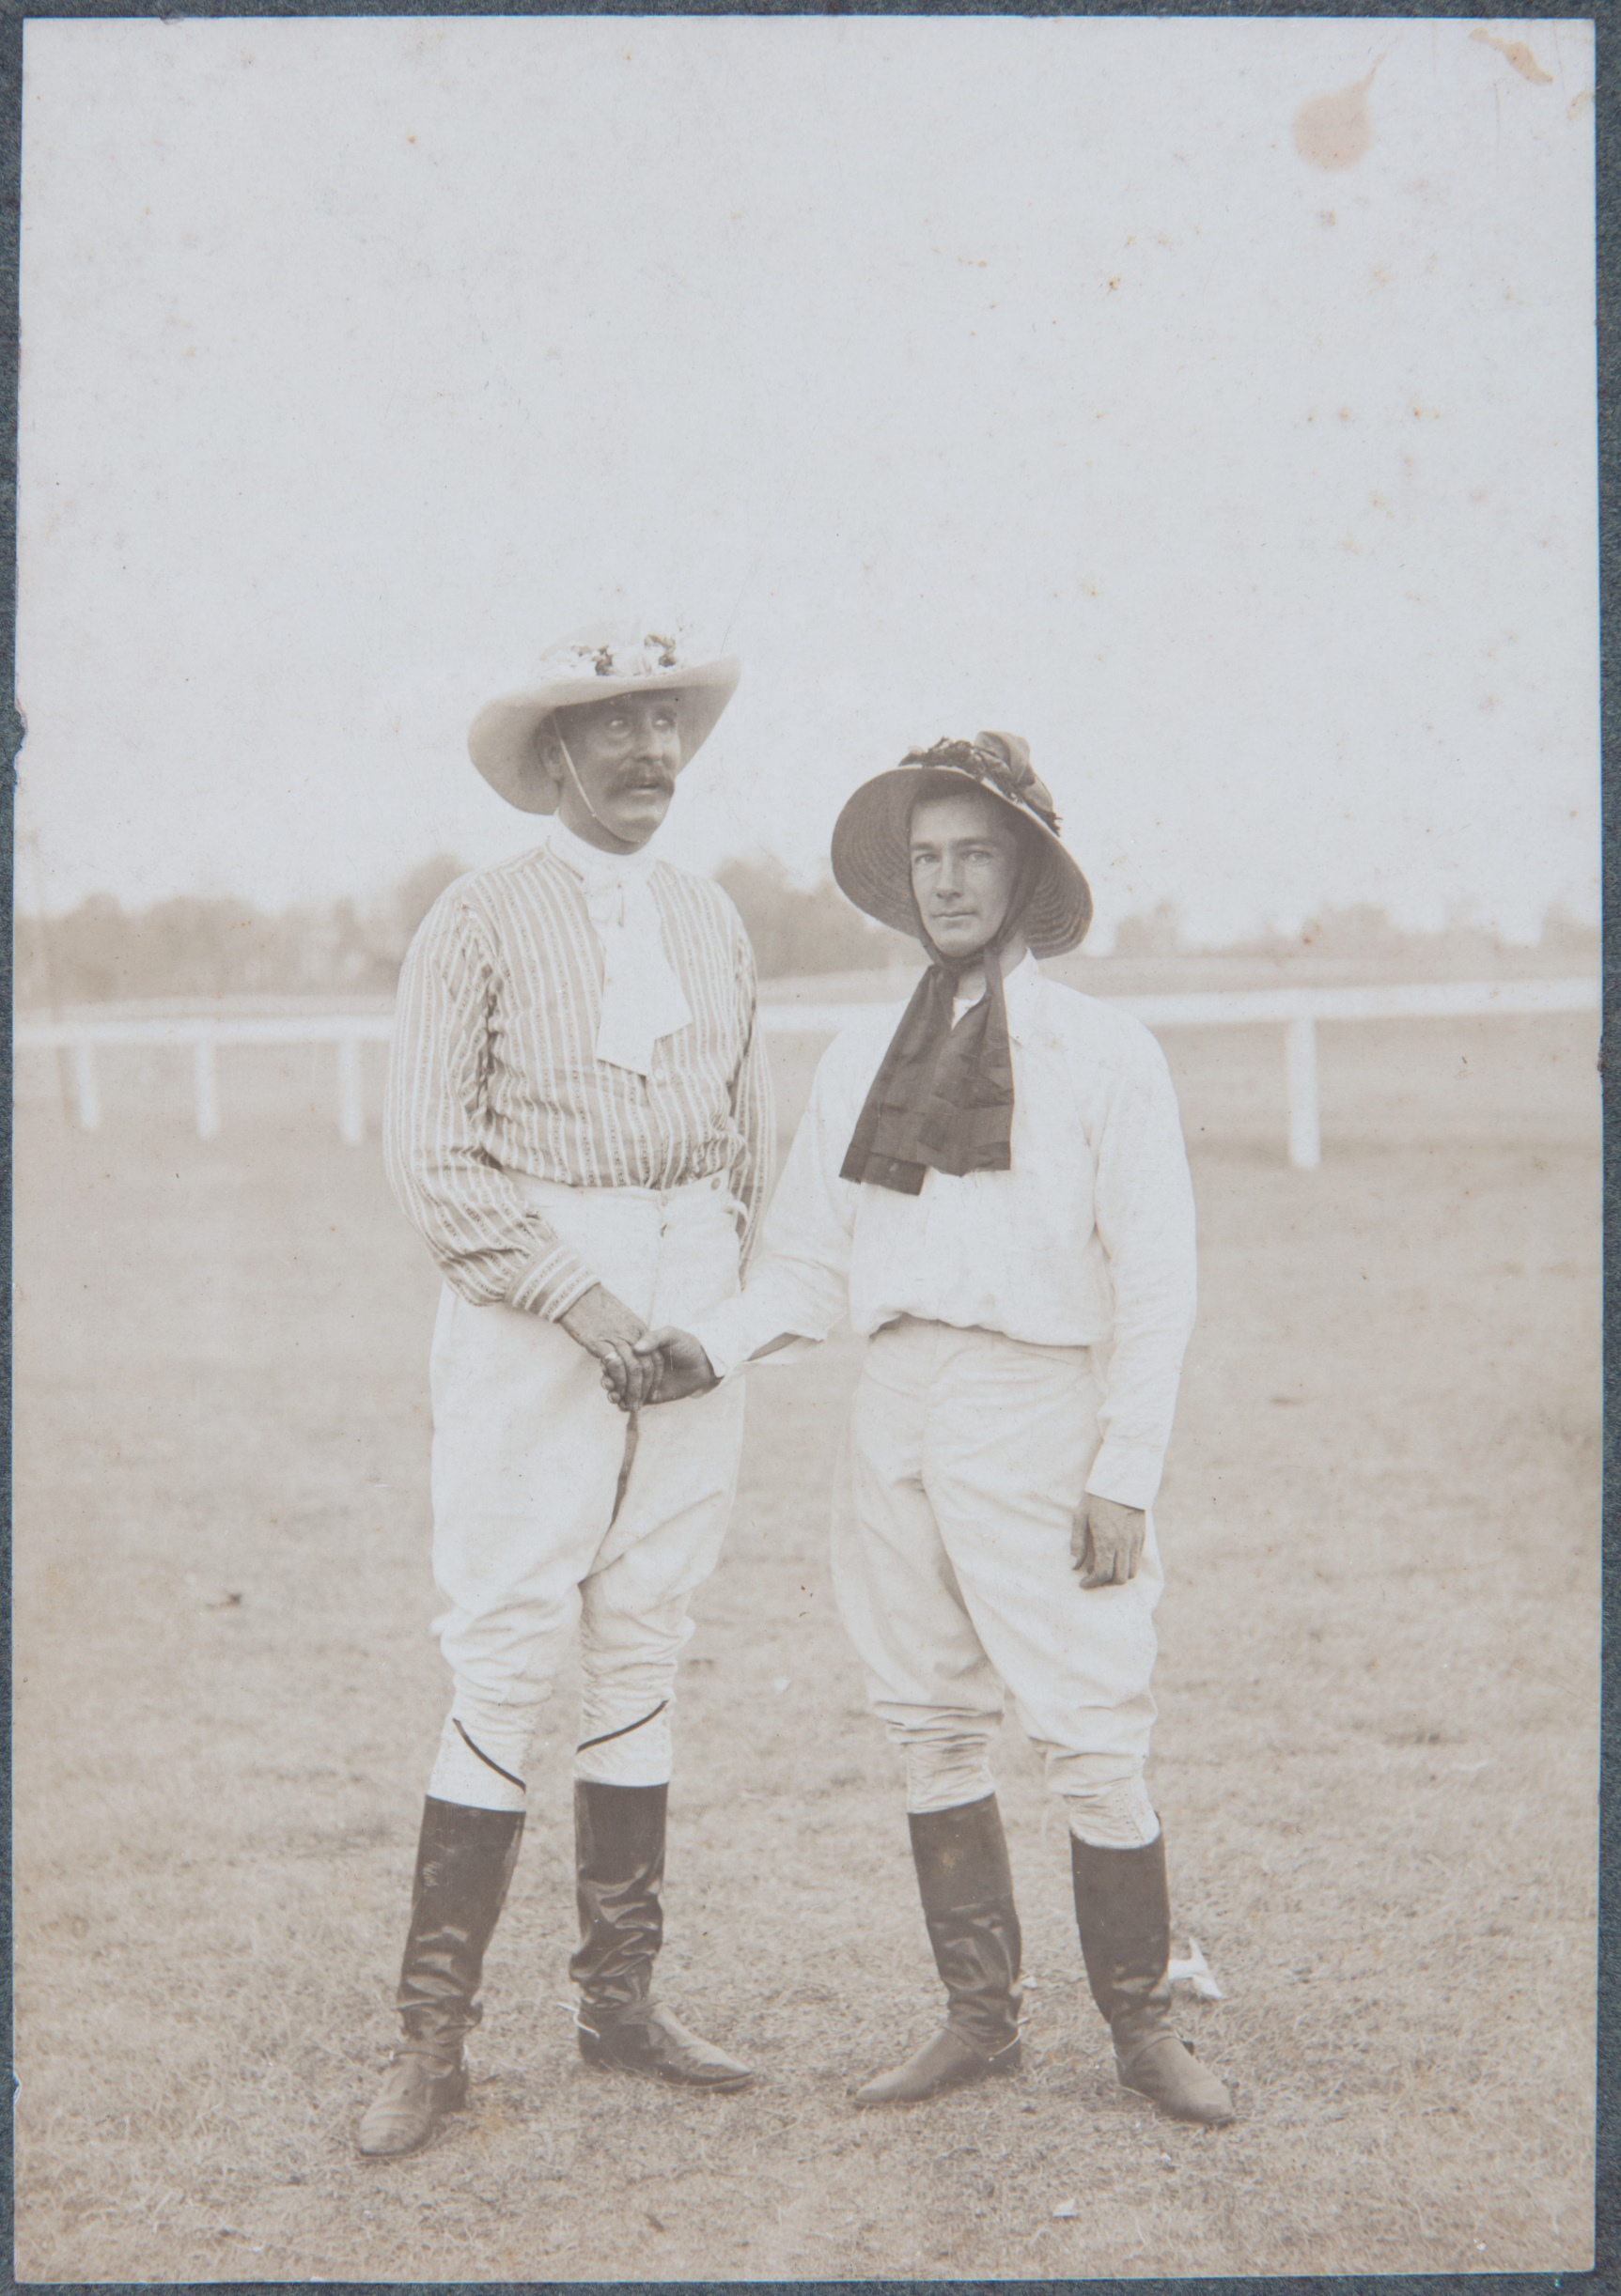 Photograph of George Terry (left) and Norman Pearce wearing ladies' hats for a novelty race at Hawkesbury Racecourse around 1910 / photographer unknown